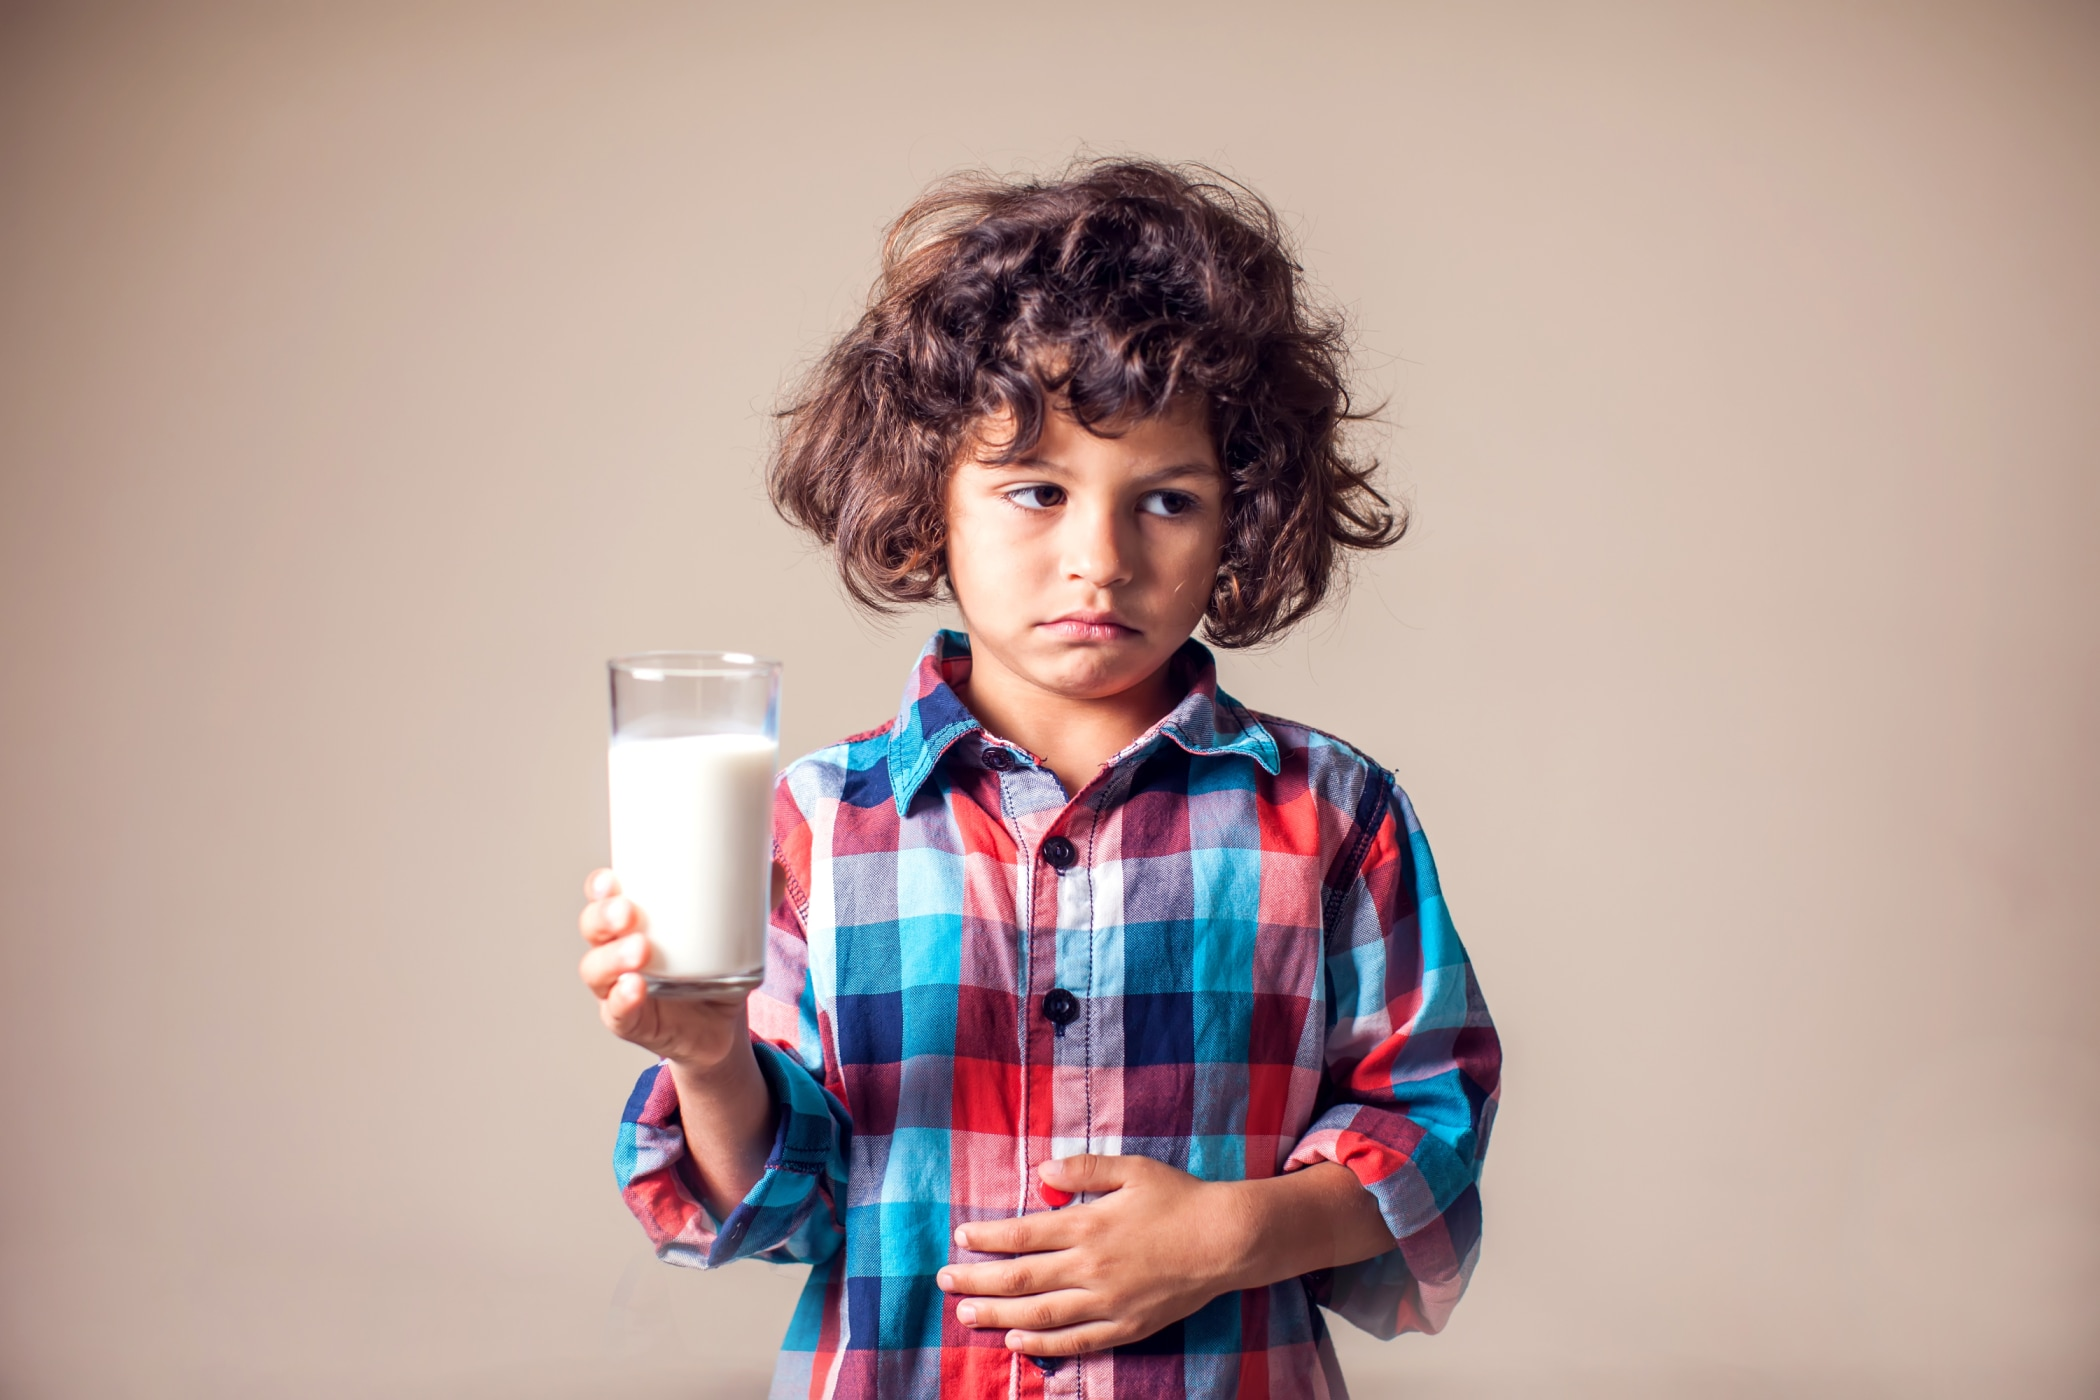 Boy with stomach pain holding a glass of milk